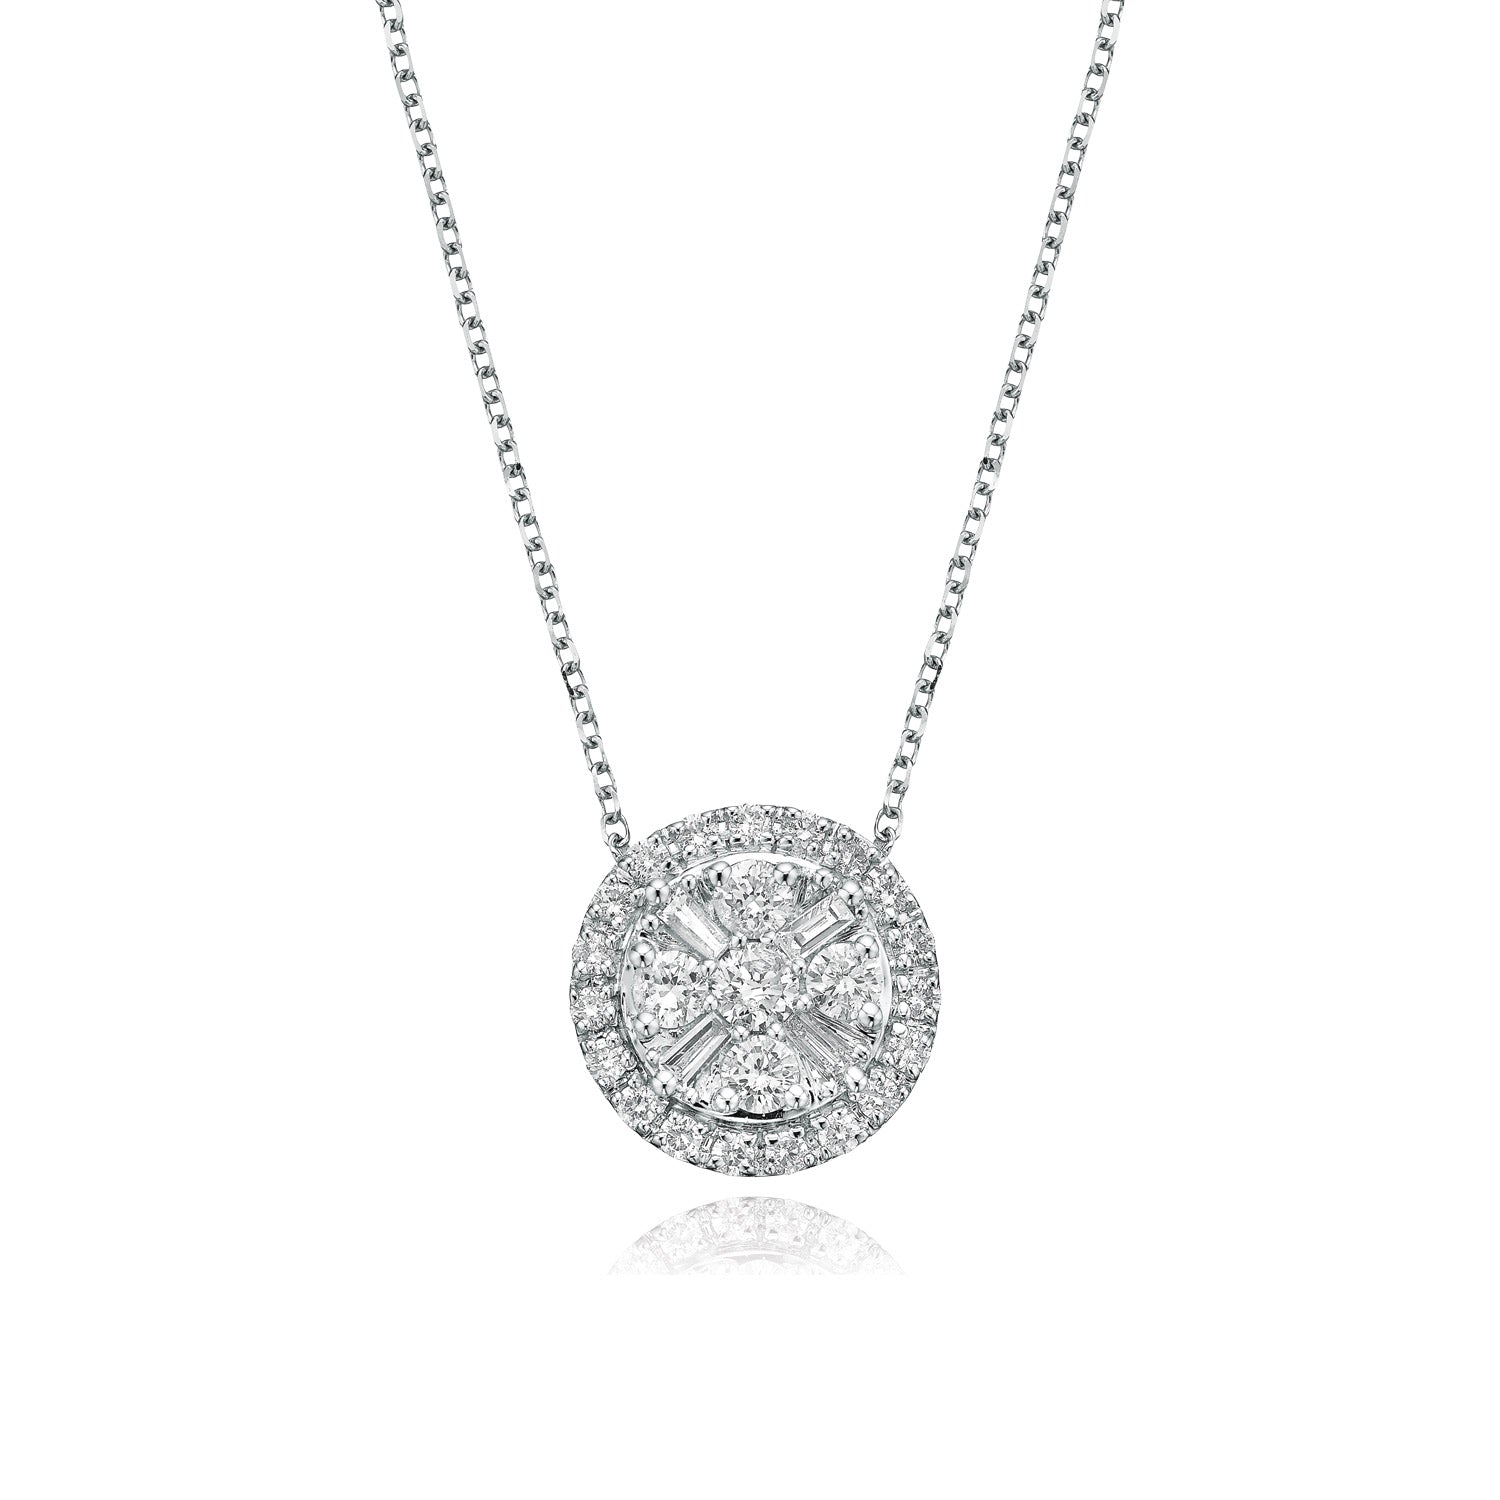 9ct White Gold Round Brillant & Baguette Cut with 1/2 CARAT tw of Diamond Pendant